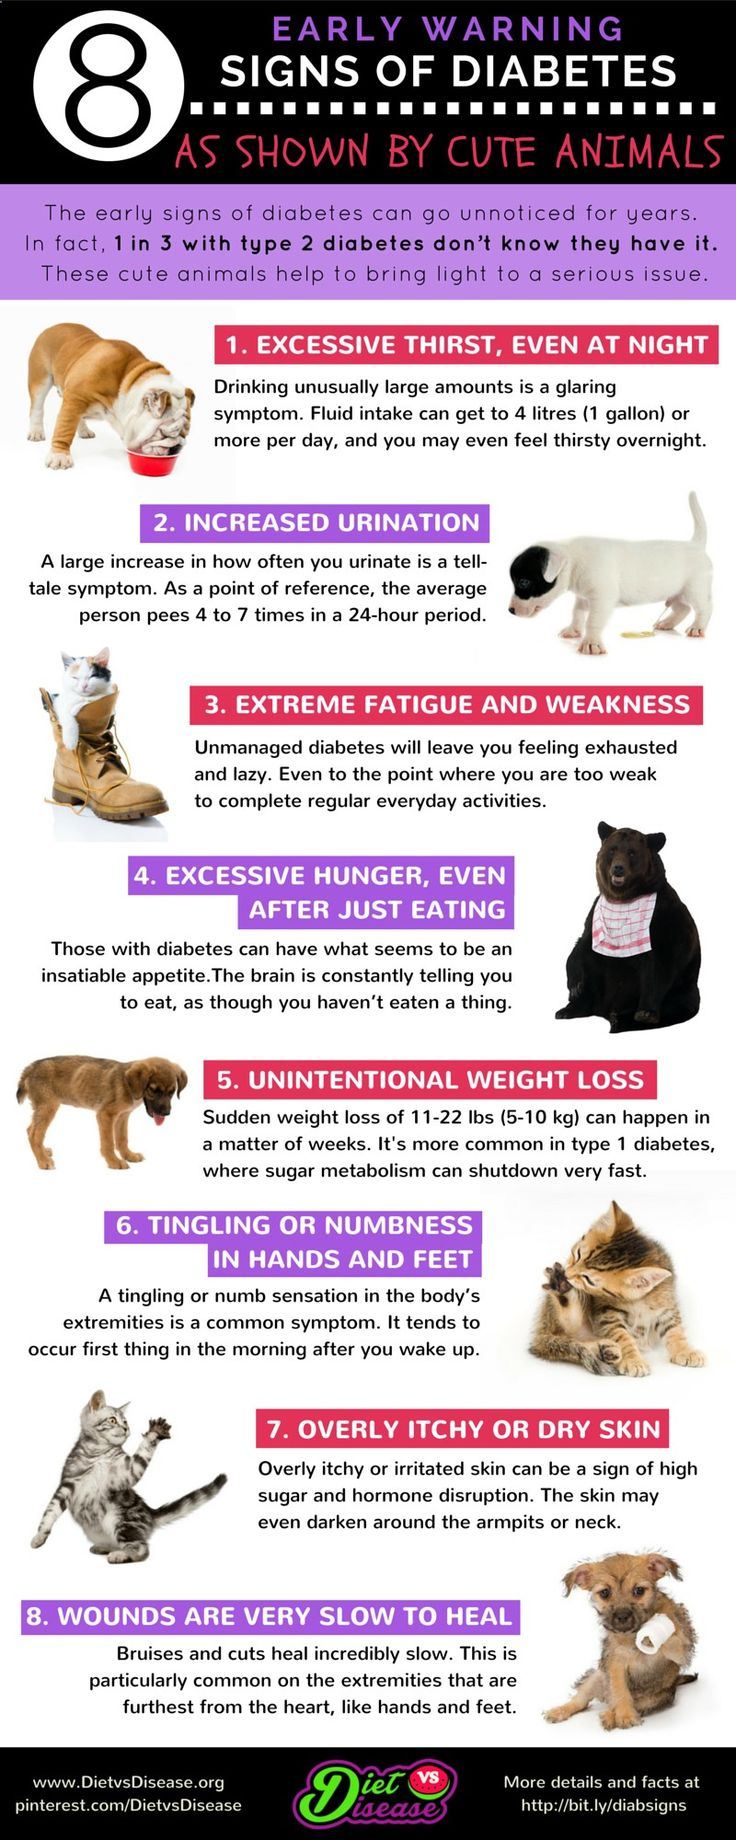 1 in 3 people with type 2 #diabetes don't know they have it. And a 3-year delay in diagnosis increases your risk of heart disease by 29%. Most actually do experience the early signs but don't realise or understand what they are. Hoping these cute animals can bring light to an important topic. Adapted from www.dietvsdisease...